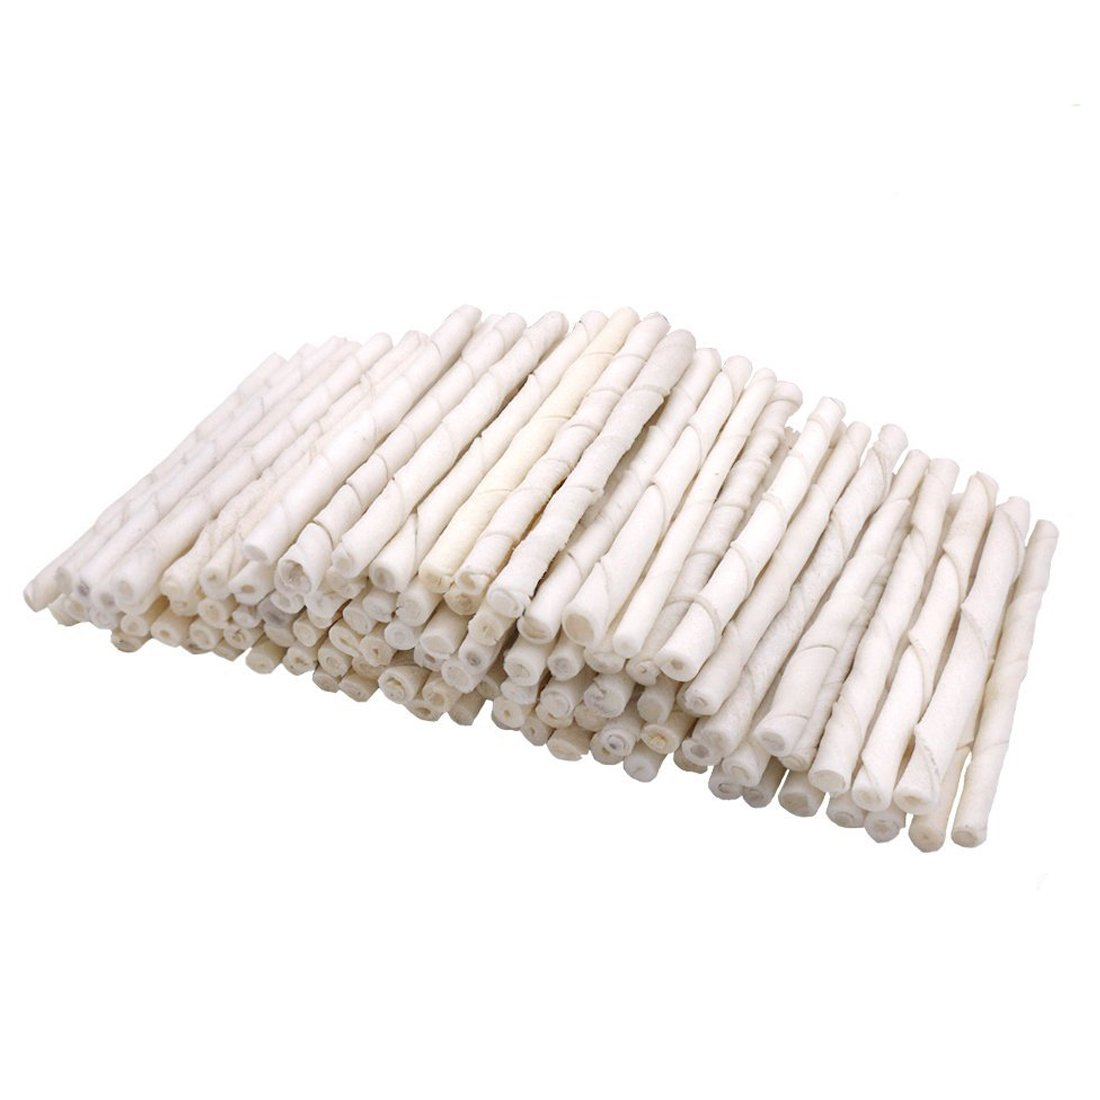 Mainstreet 60-Count 5'' Twists Sticks 100% Natural Rawhide Dog Treats For Small/Medium Dog Jerky Twists Chew 12.7oz